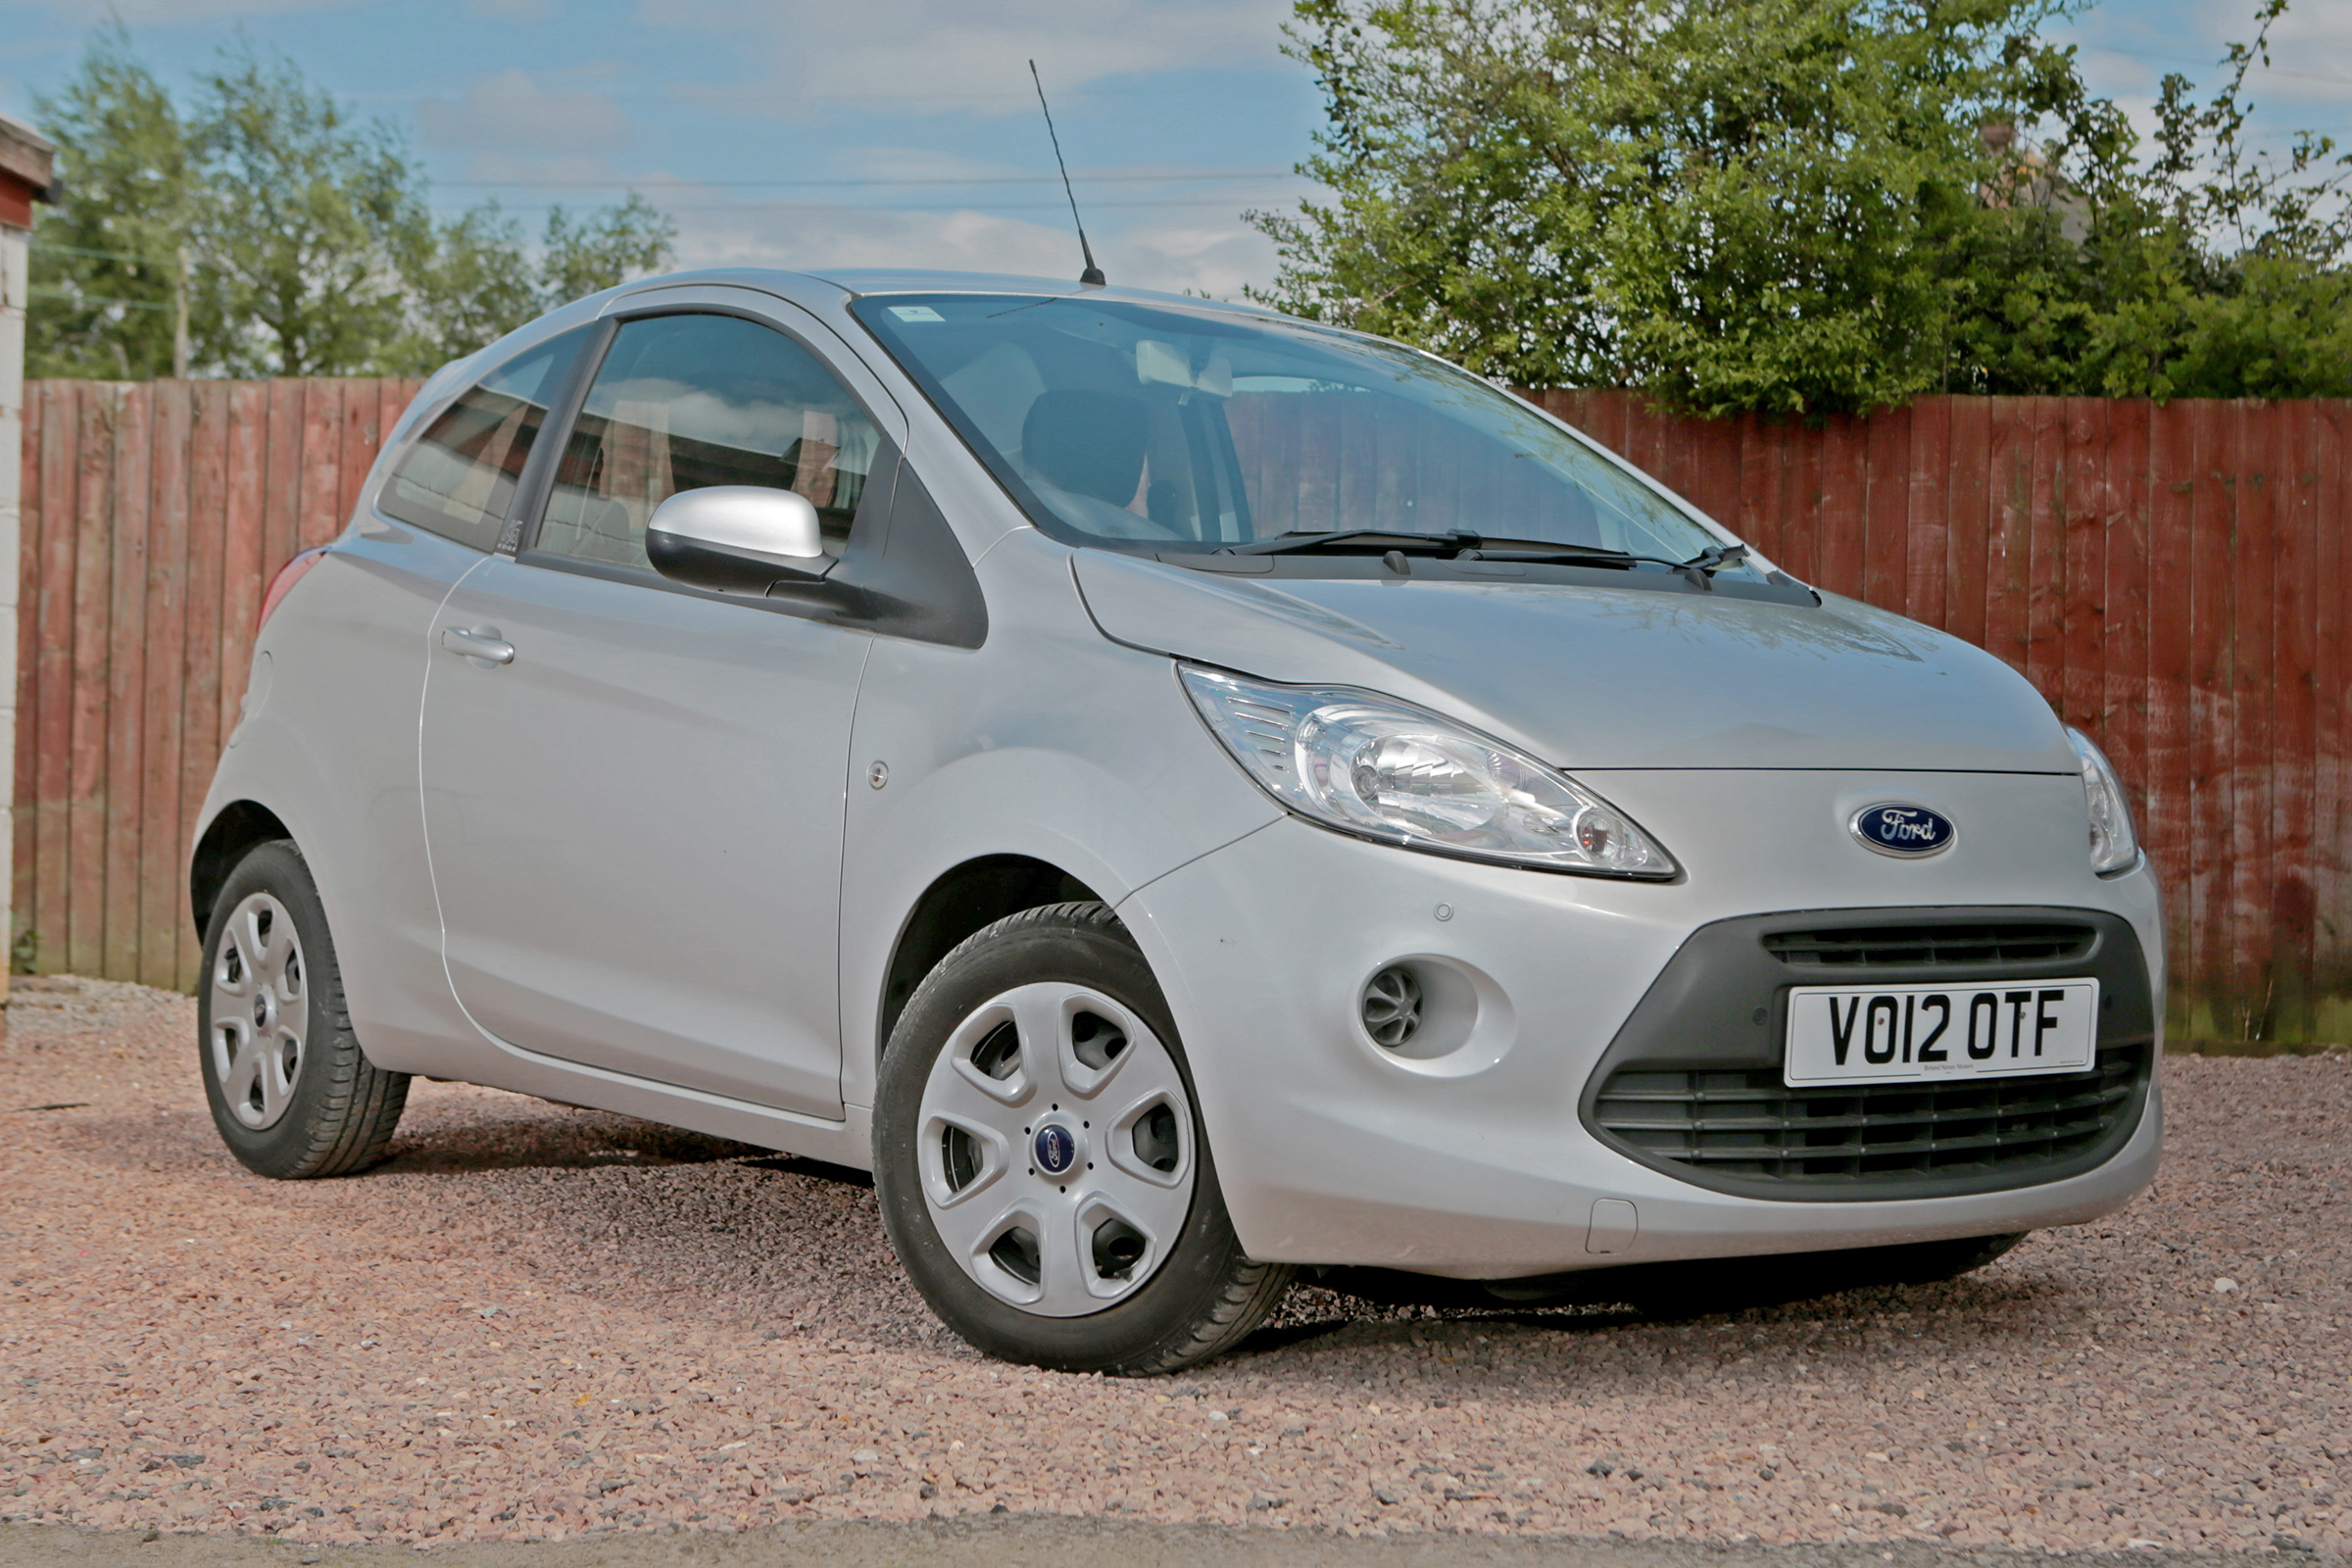 Used Ford Ka review | Auto Express